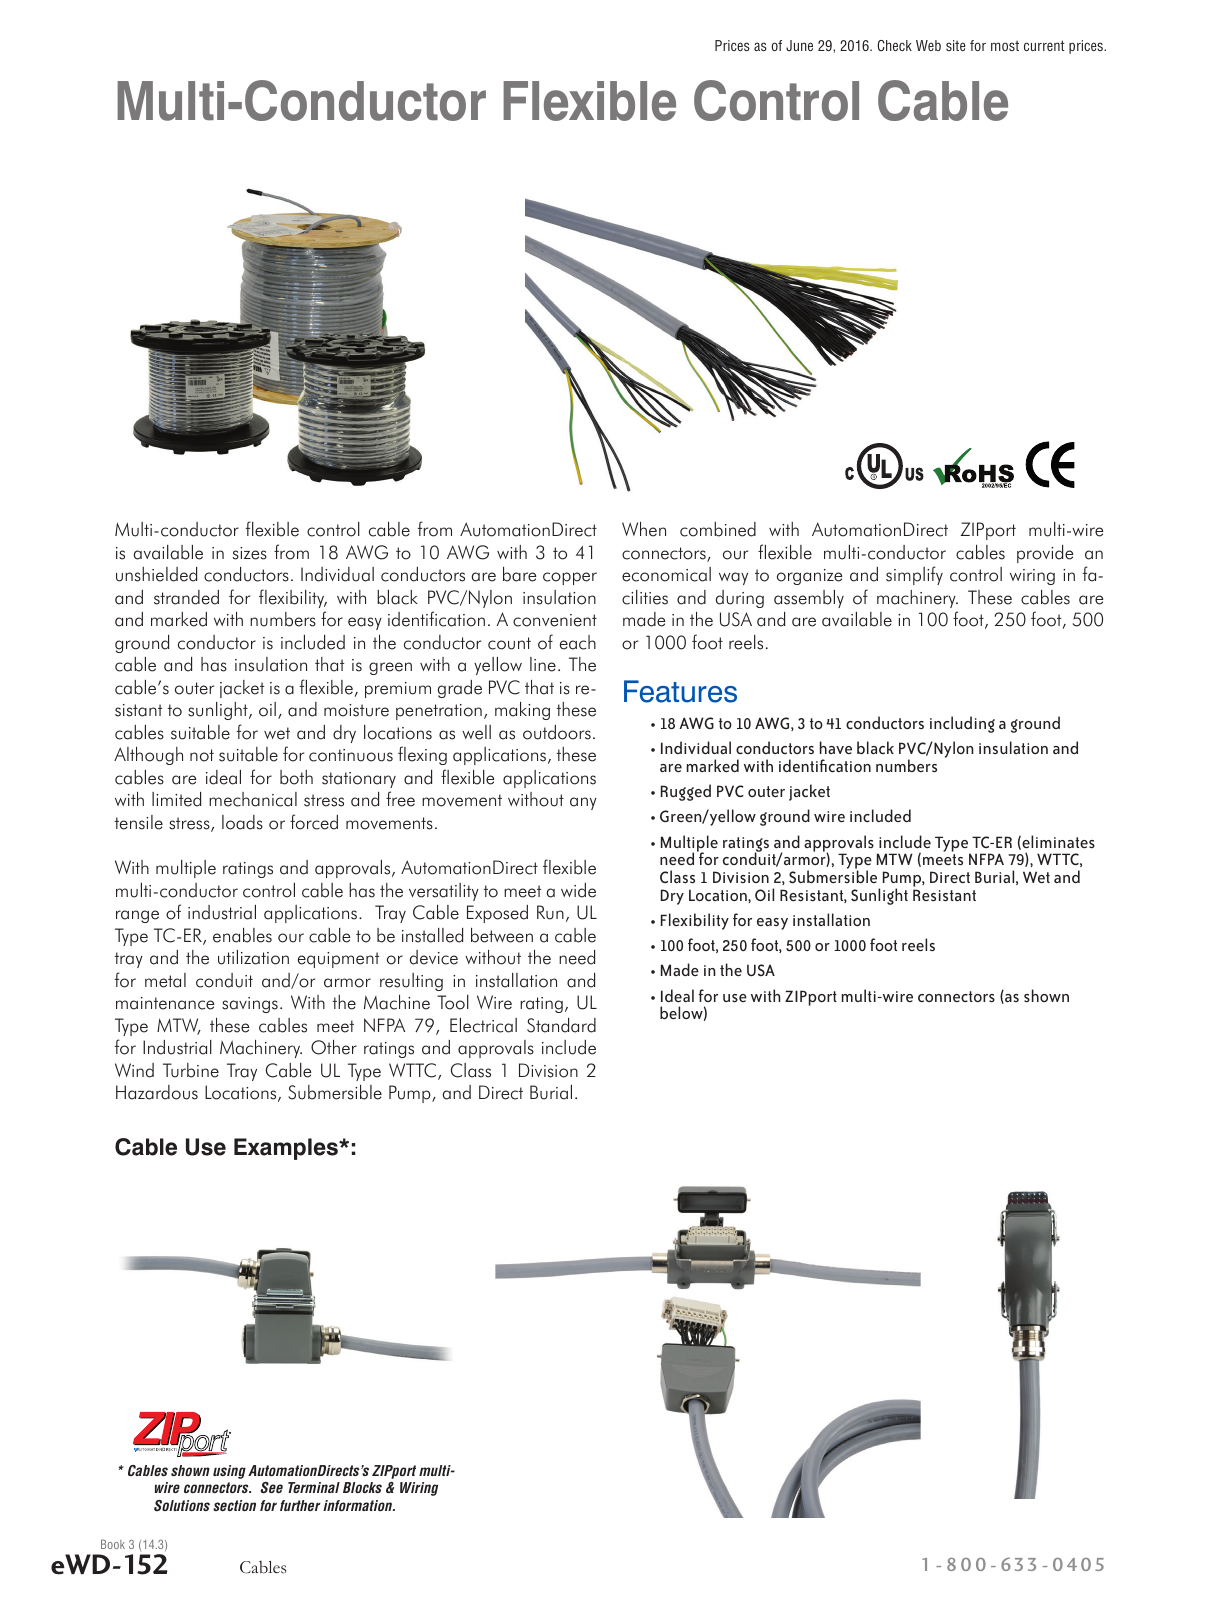 Foot Switch For Automation Direct Wiring Diagram Trusted Multi Wire Conductor Flexible Control Cable